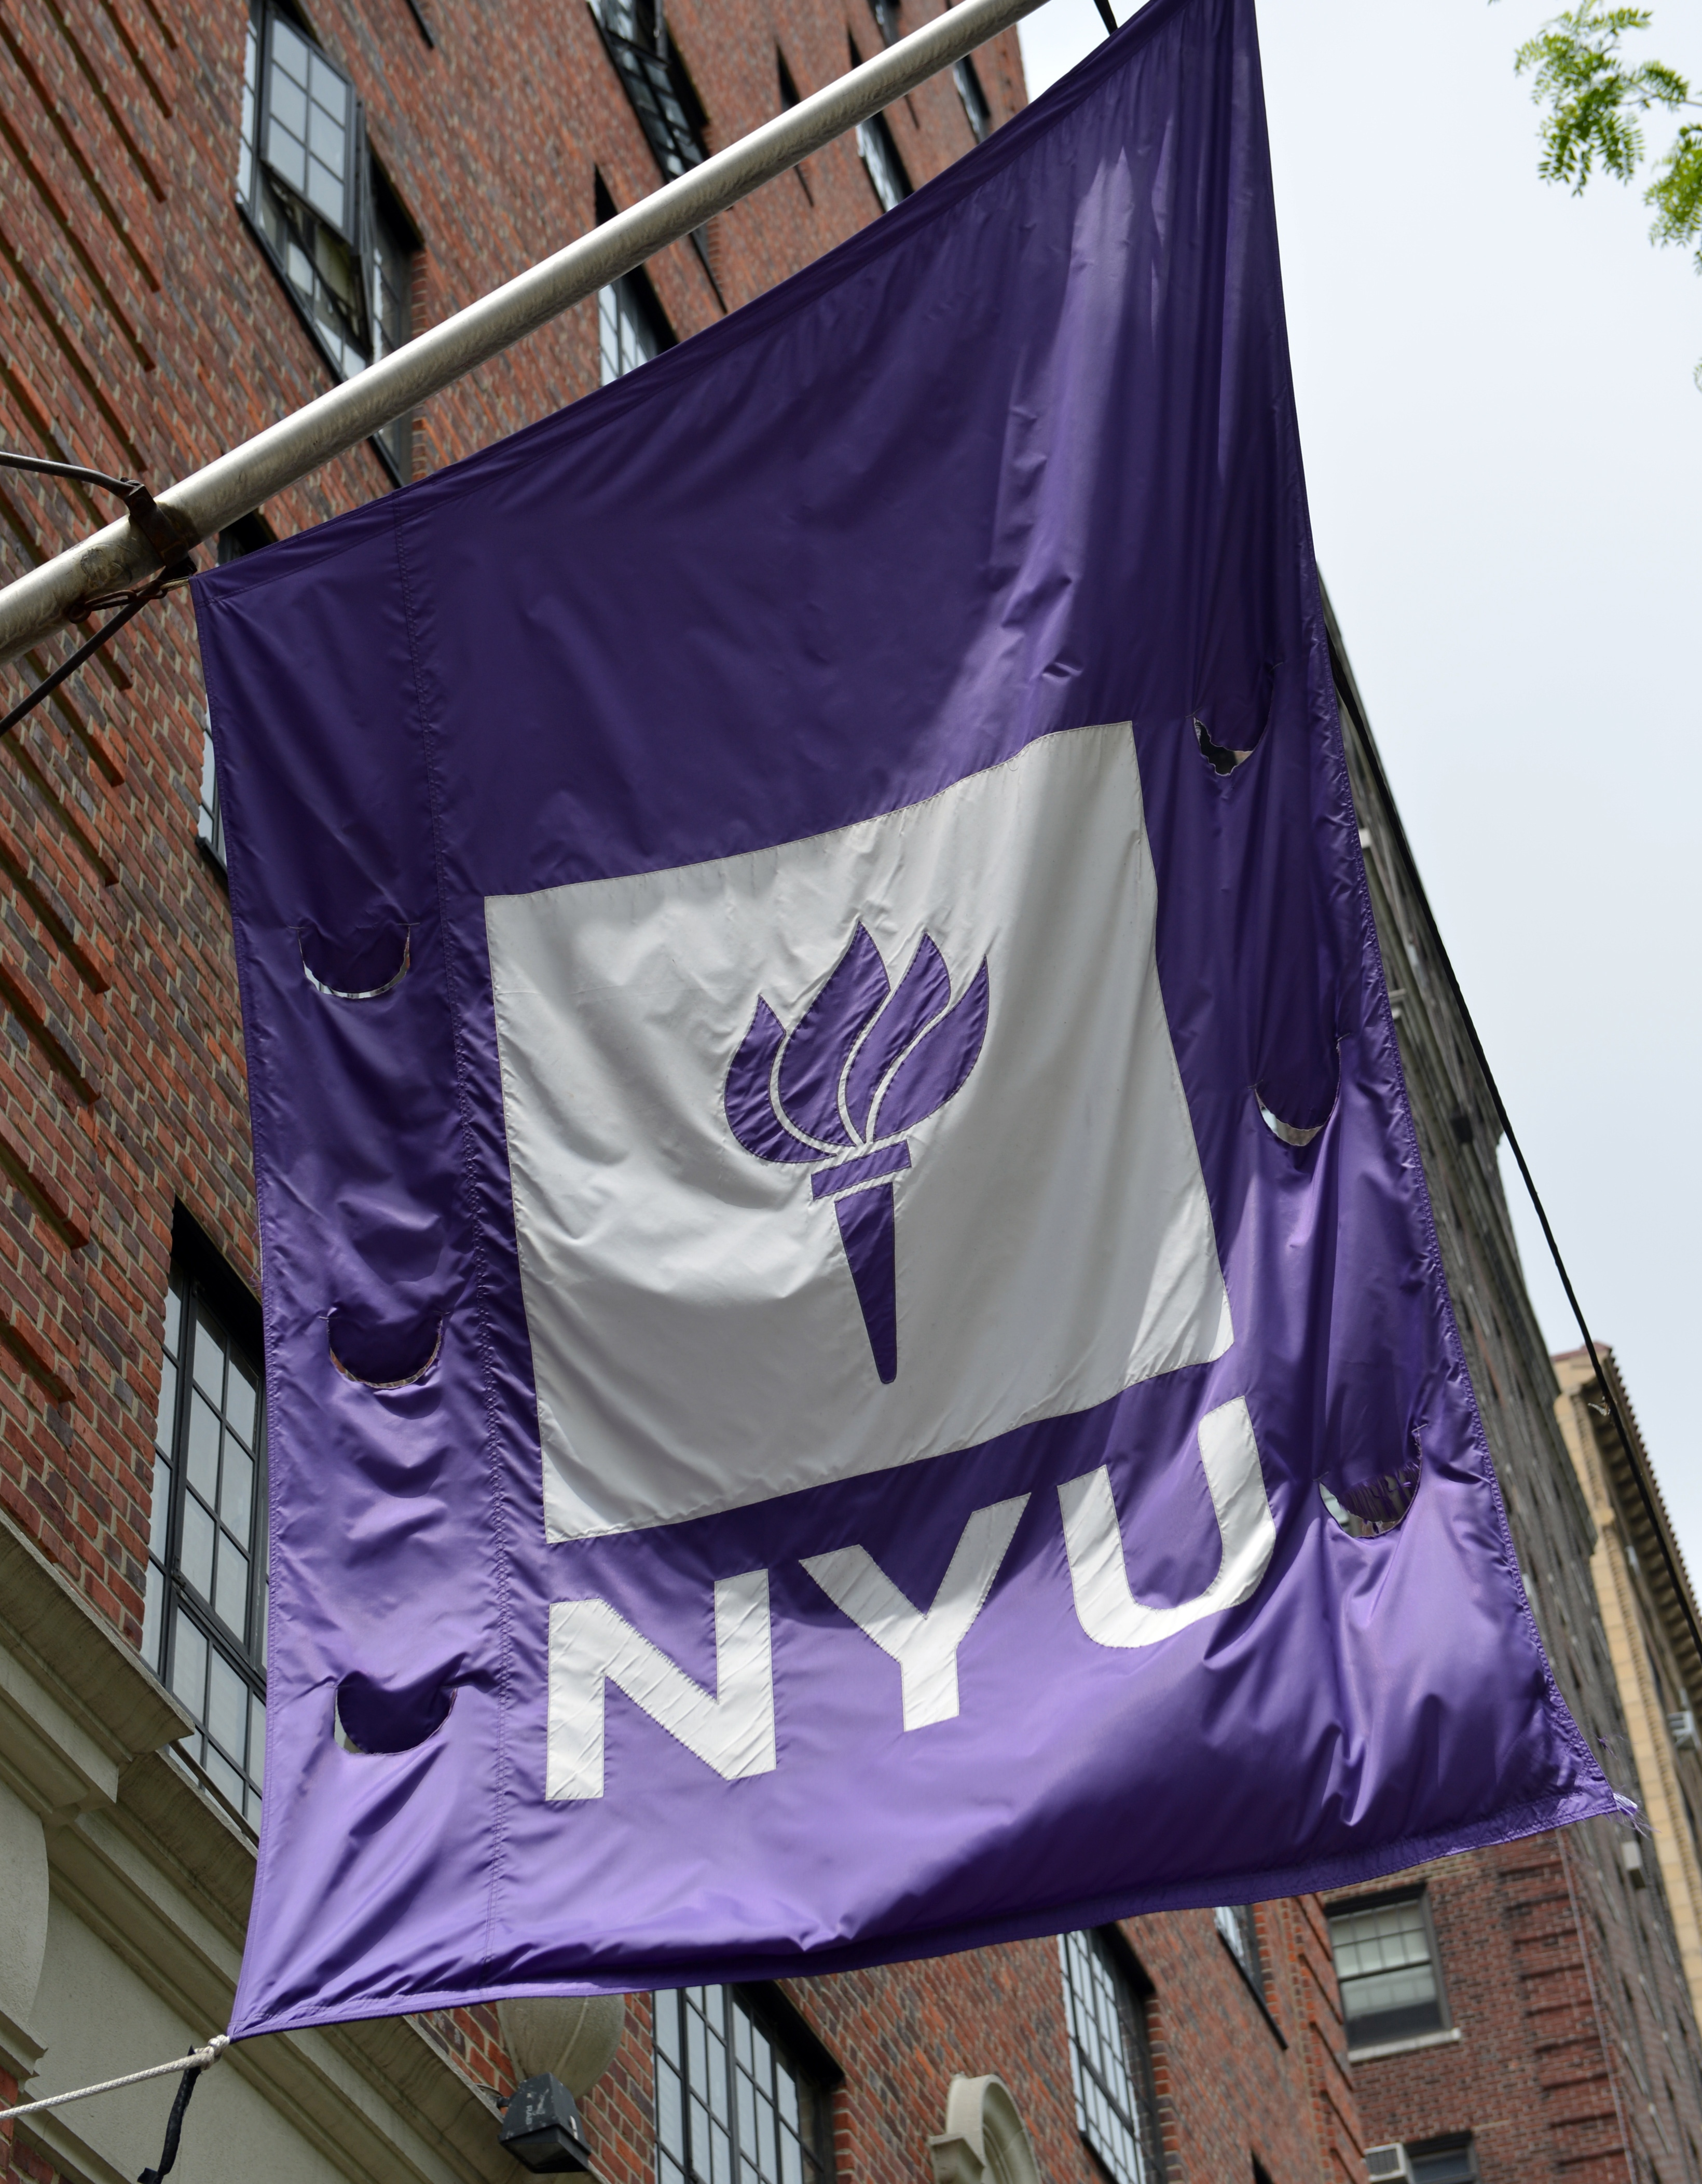 A flag flies from a building at New York University May 4, 2012 in New York.